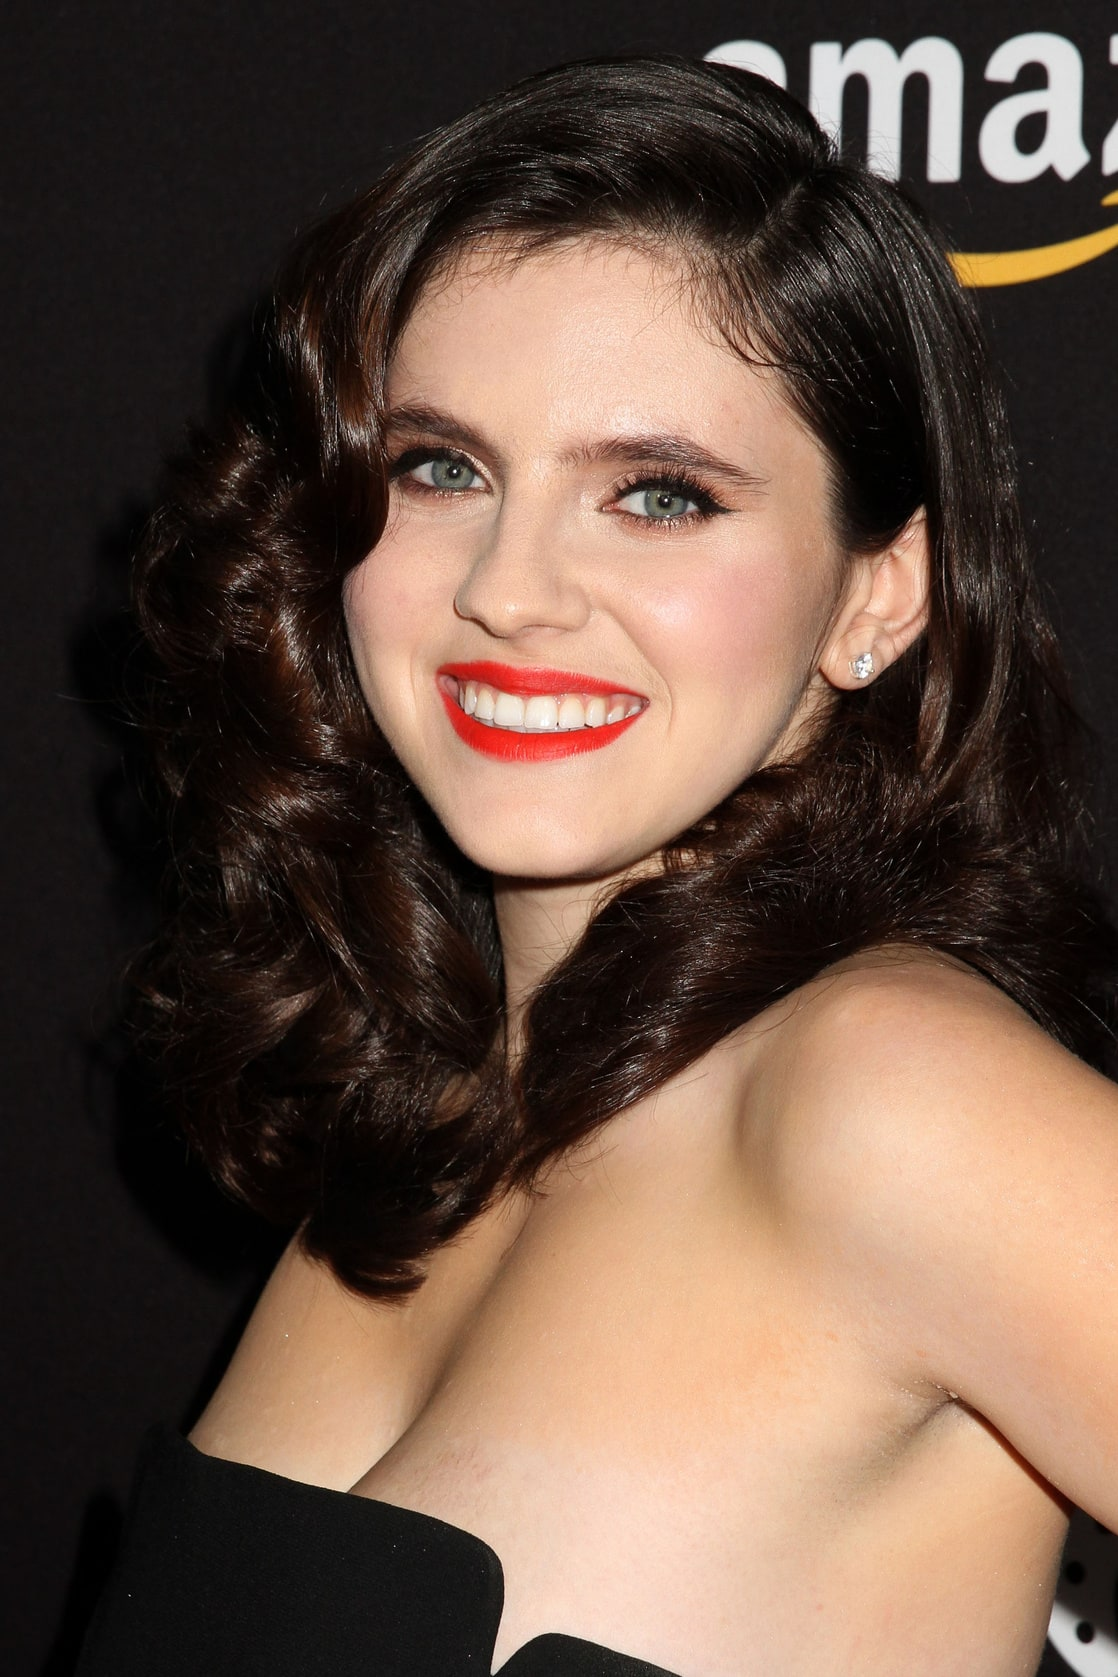 Kara Hayward nude (63 photos), leaked Sideboobs, Instagram, cleavage 2016